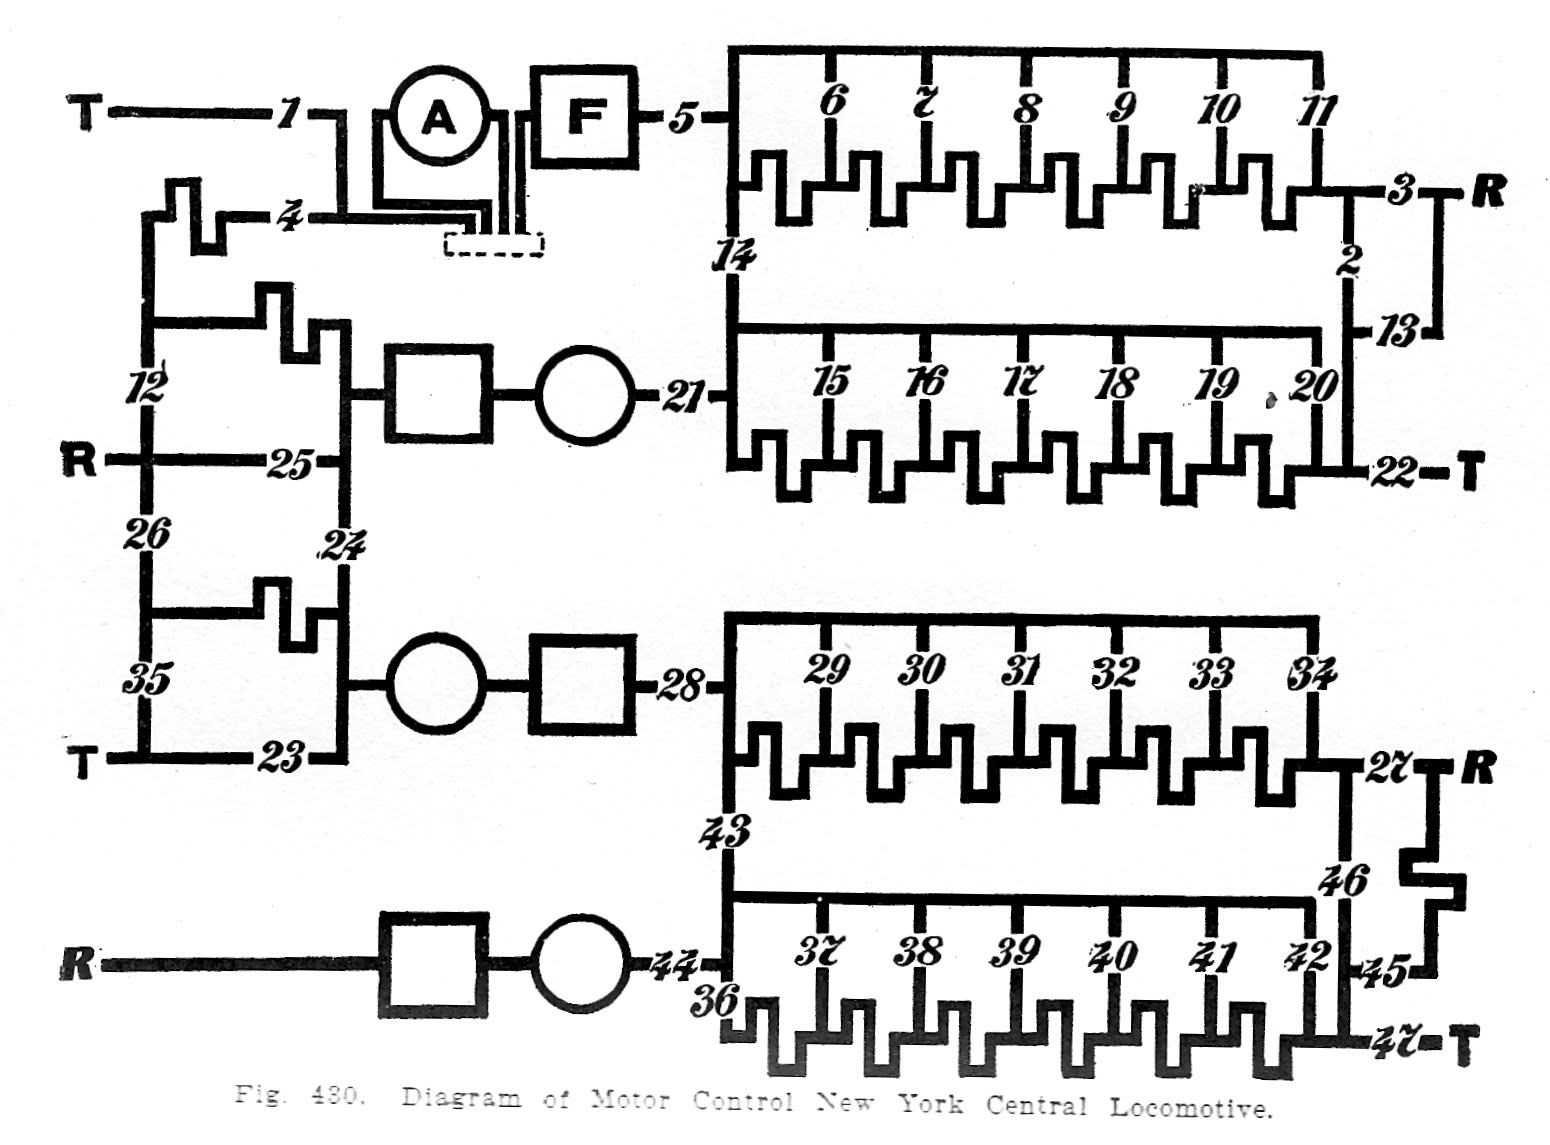 Cool westinghouse ac motor wiring diagram images the best westinghouse motor starter wiring diagram somurich asfbconference2016 Image collections